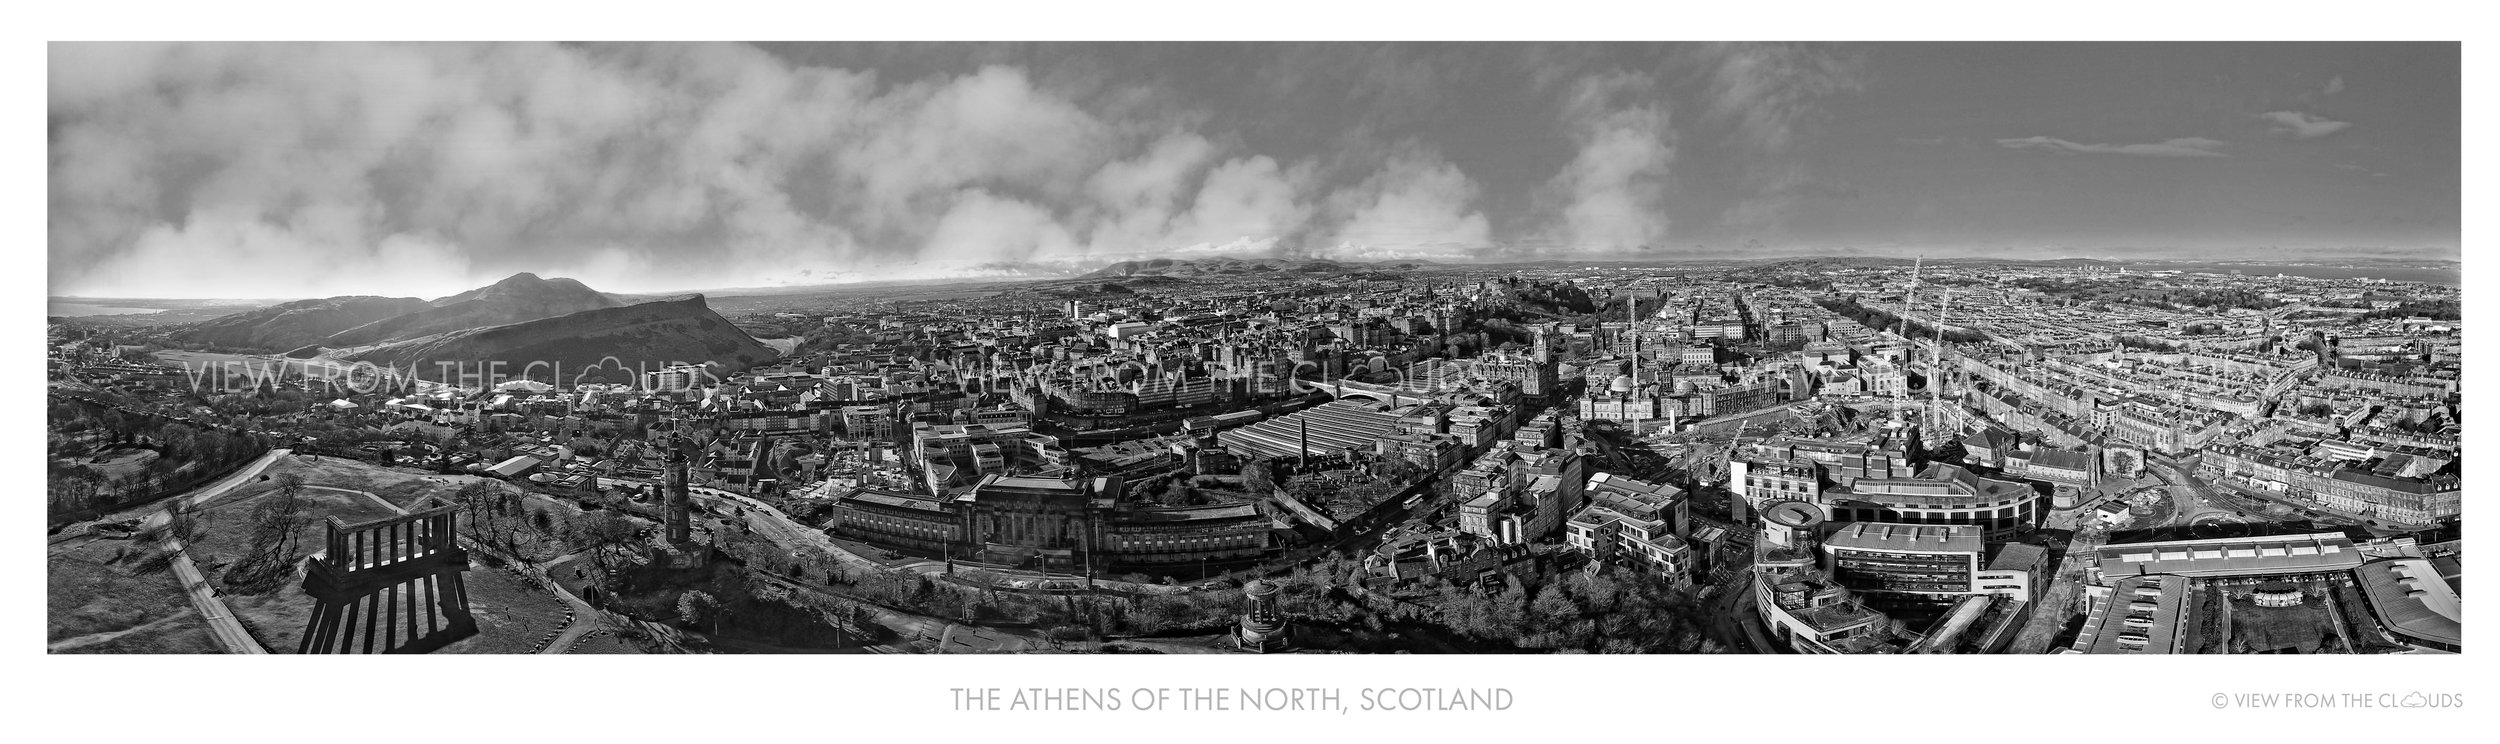 The-Athens-of-the-North-BWv2.jpg